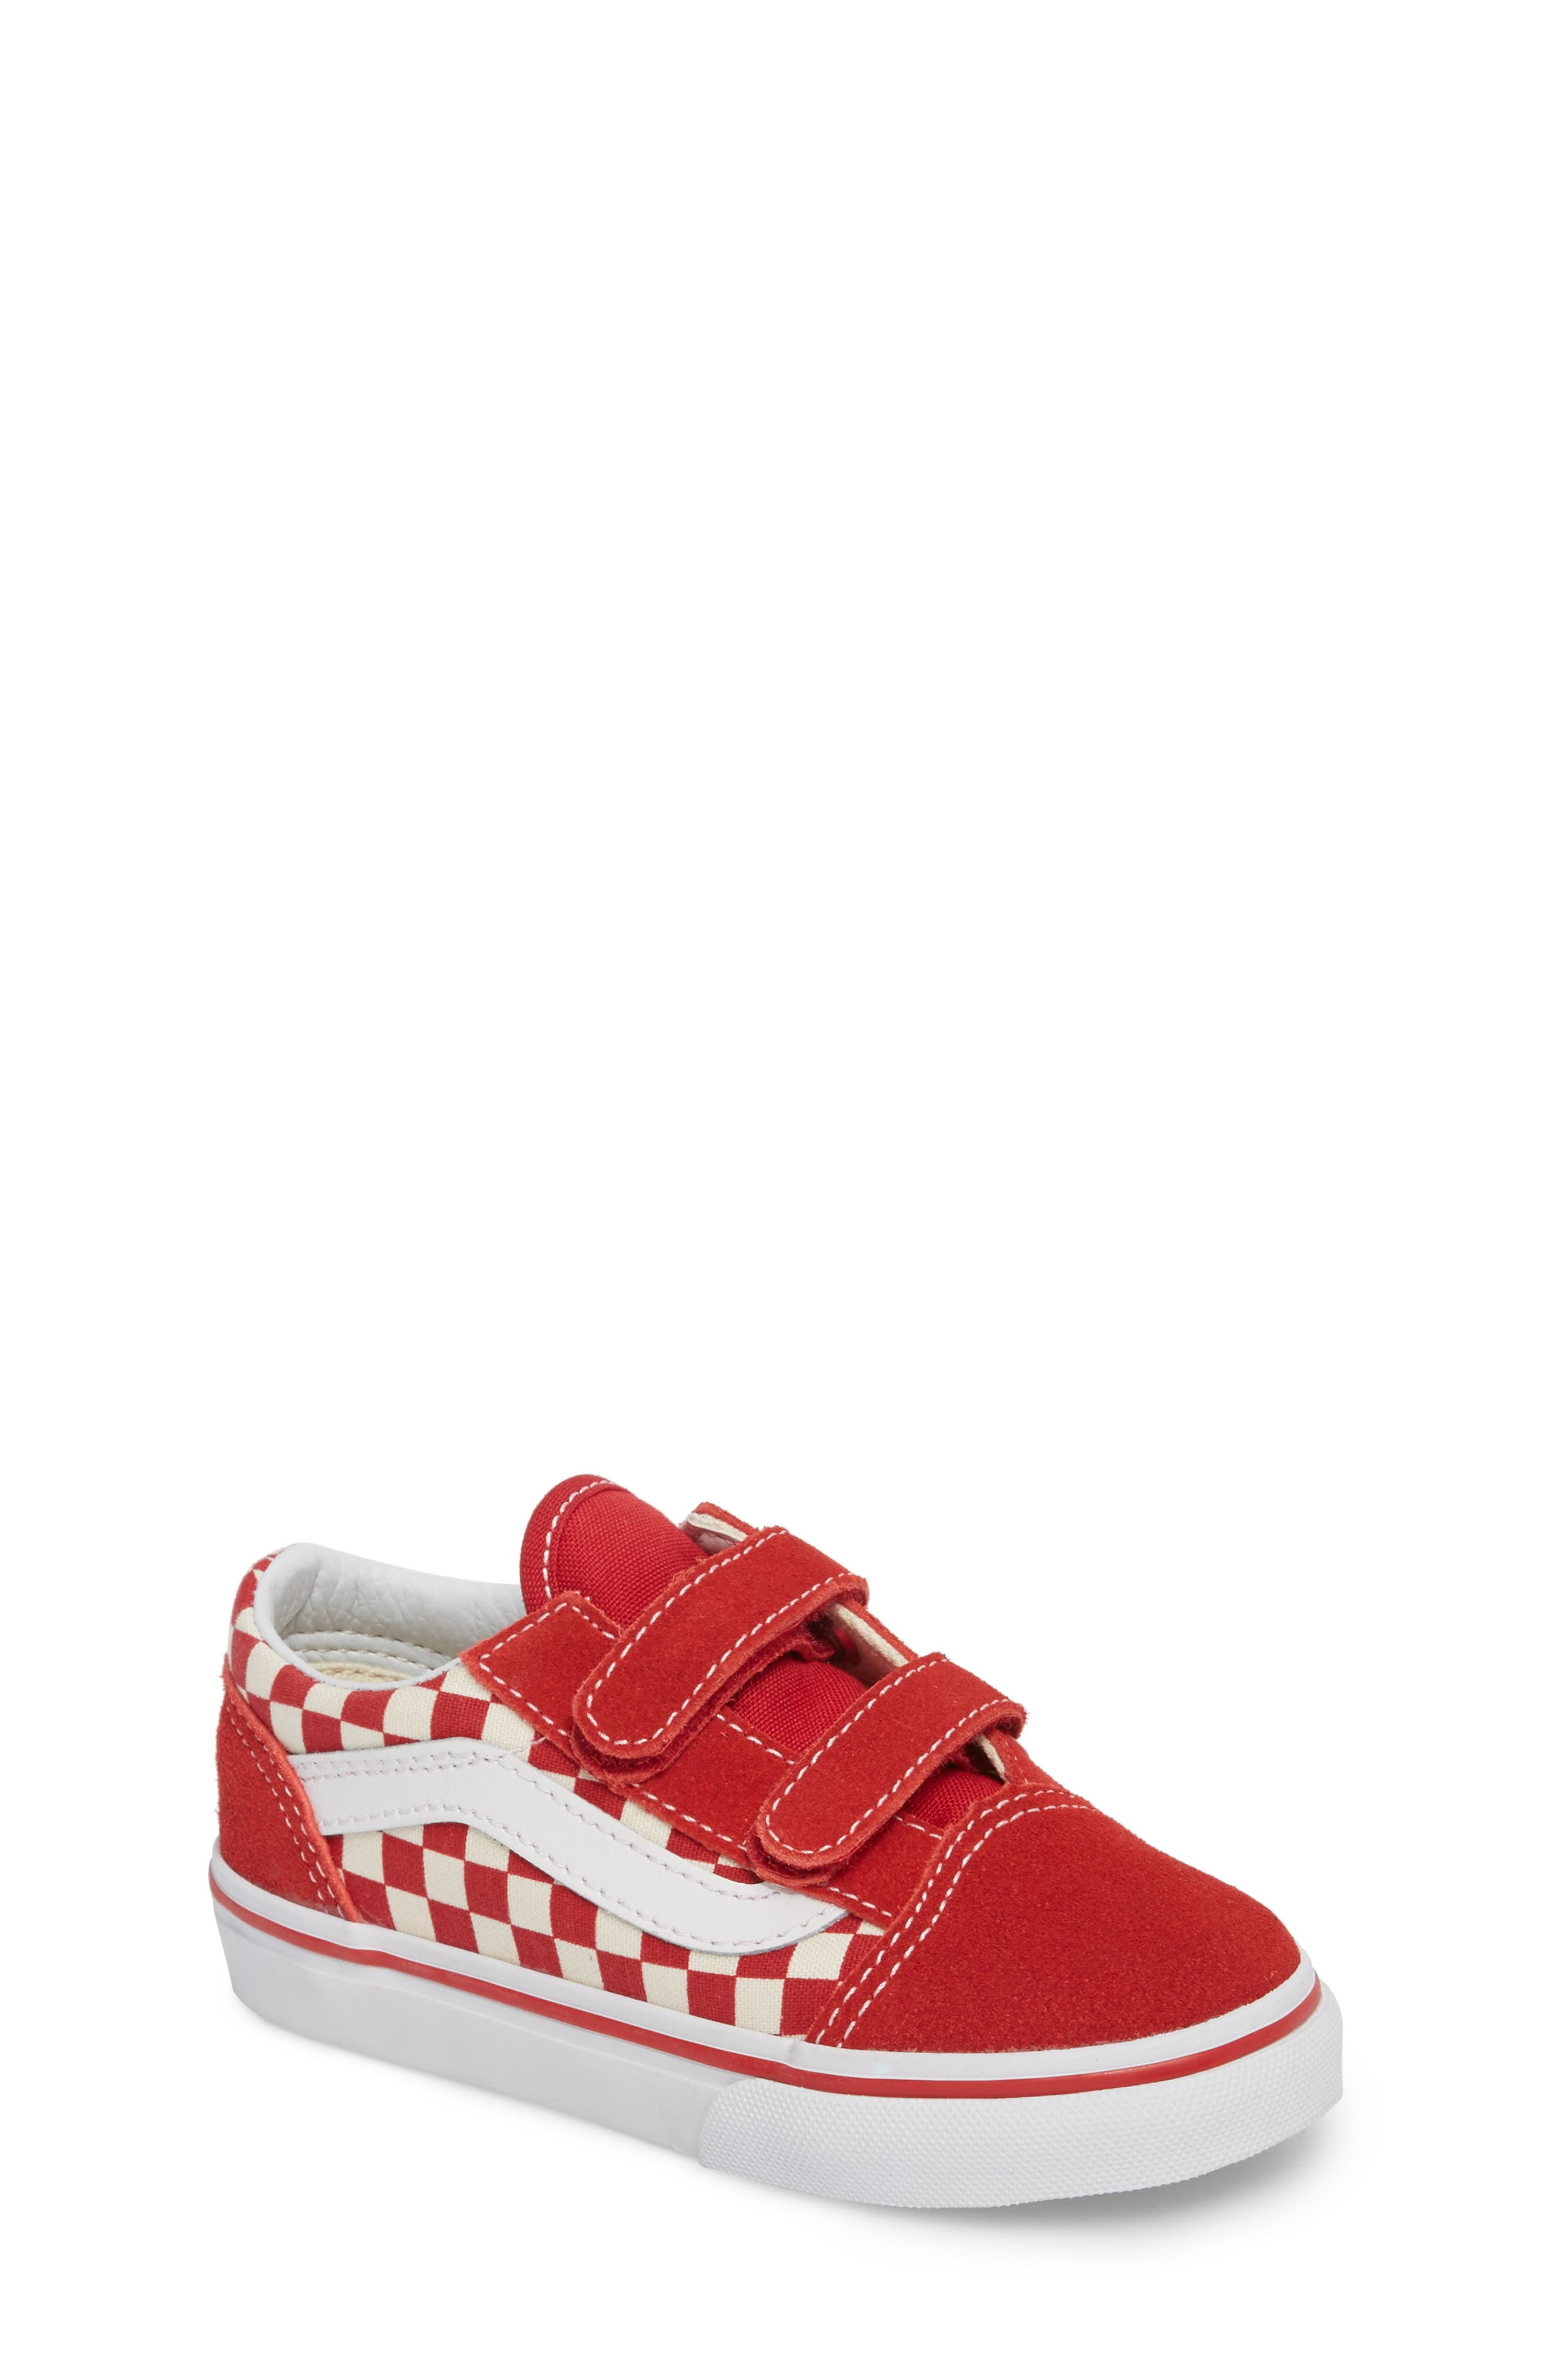 Vans Old Skool V Sneaker (Baby, Walker, Toddler, Little Kid & Big Kid)